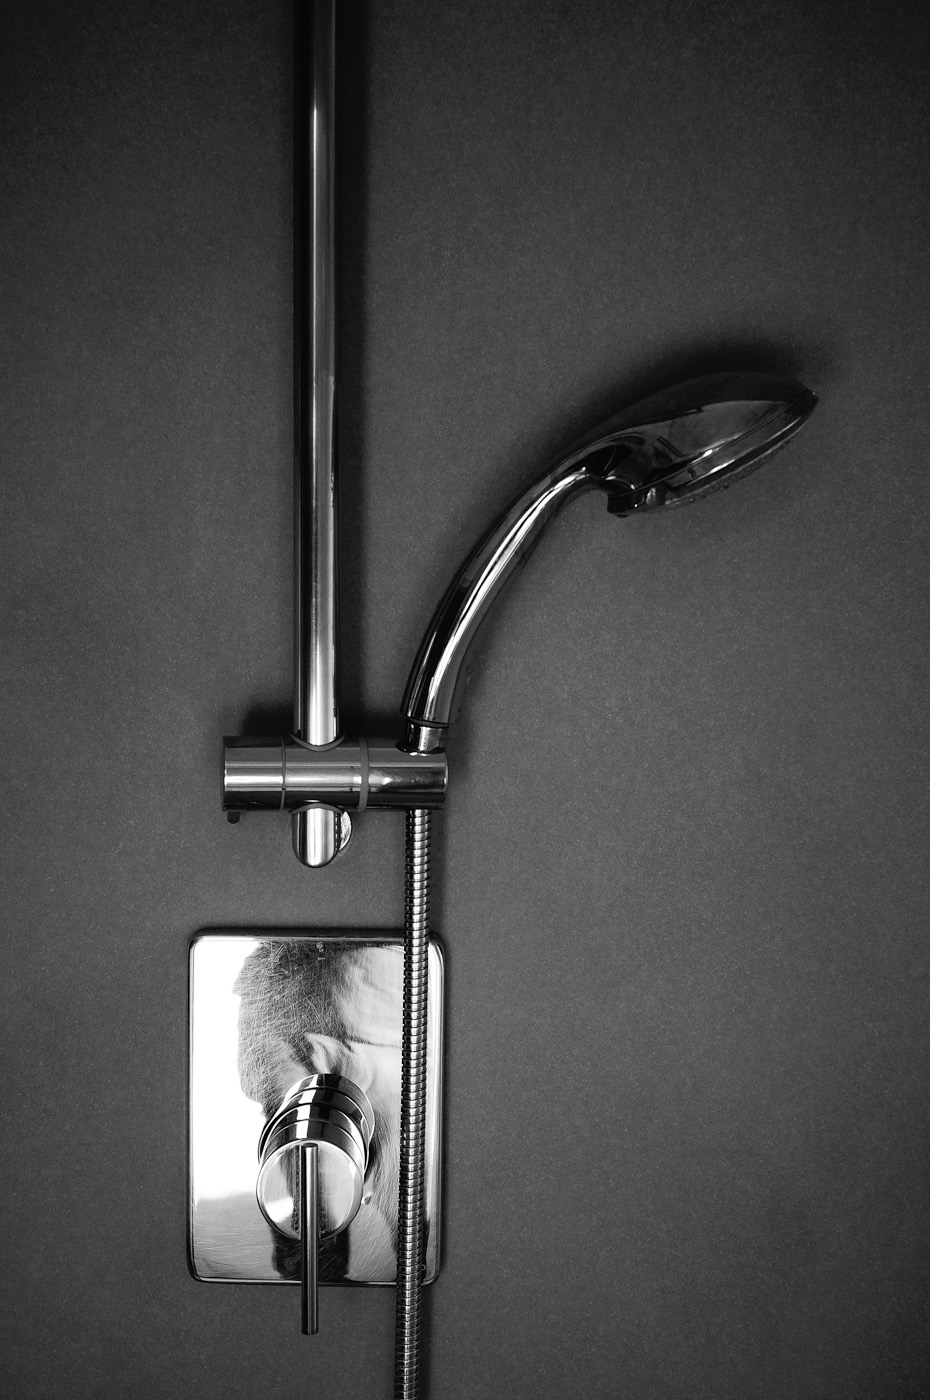 A product shot of a shower using the Sony NEX-5N